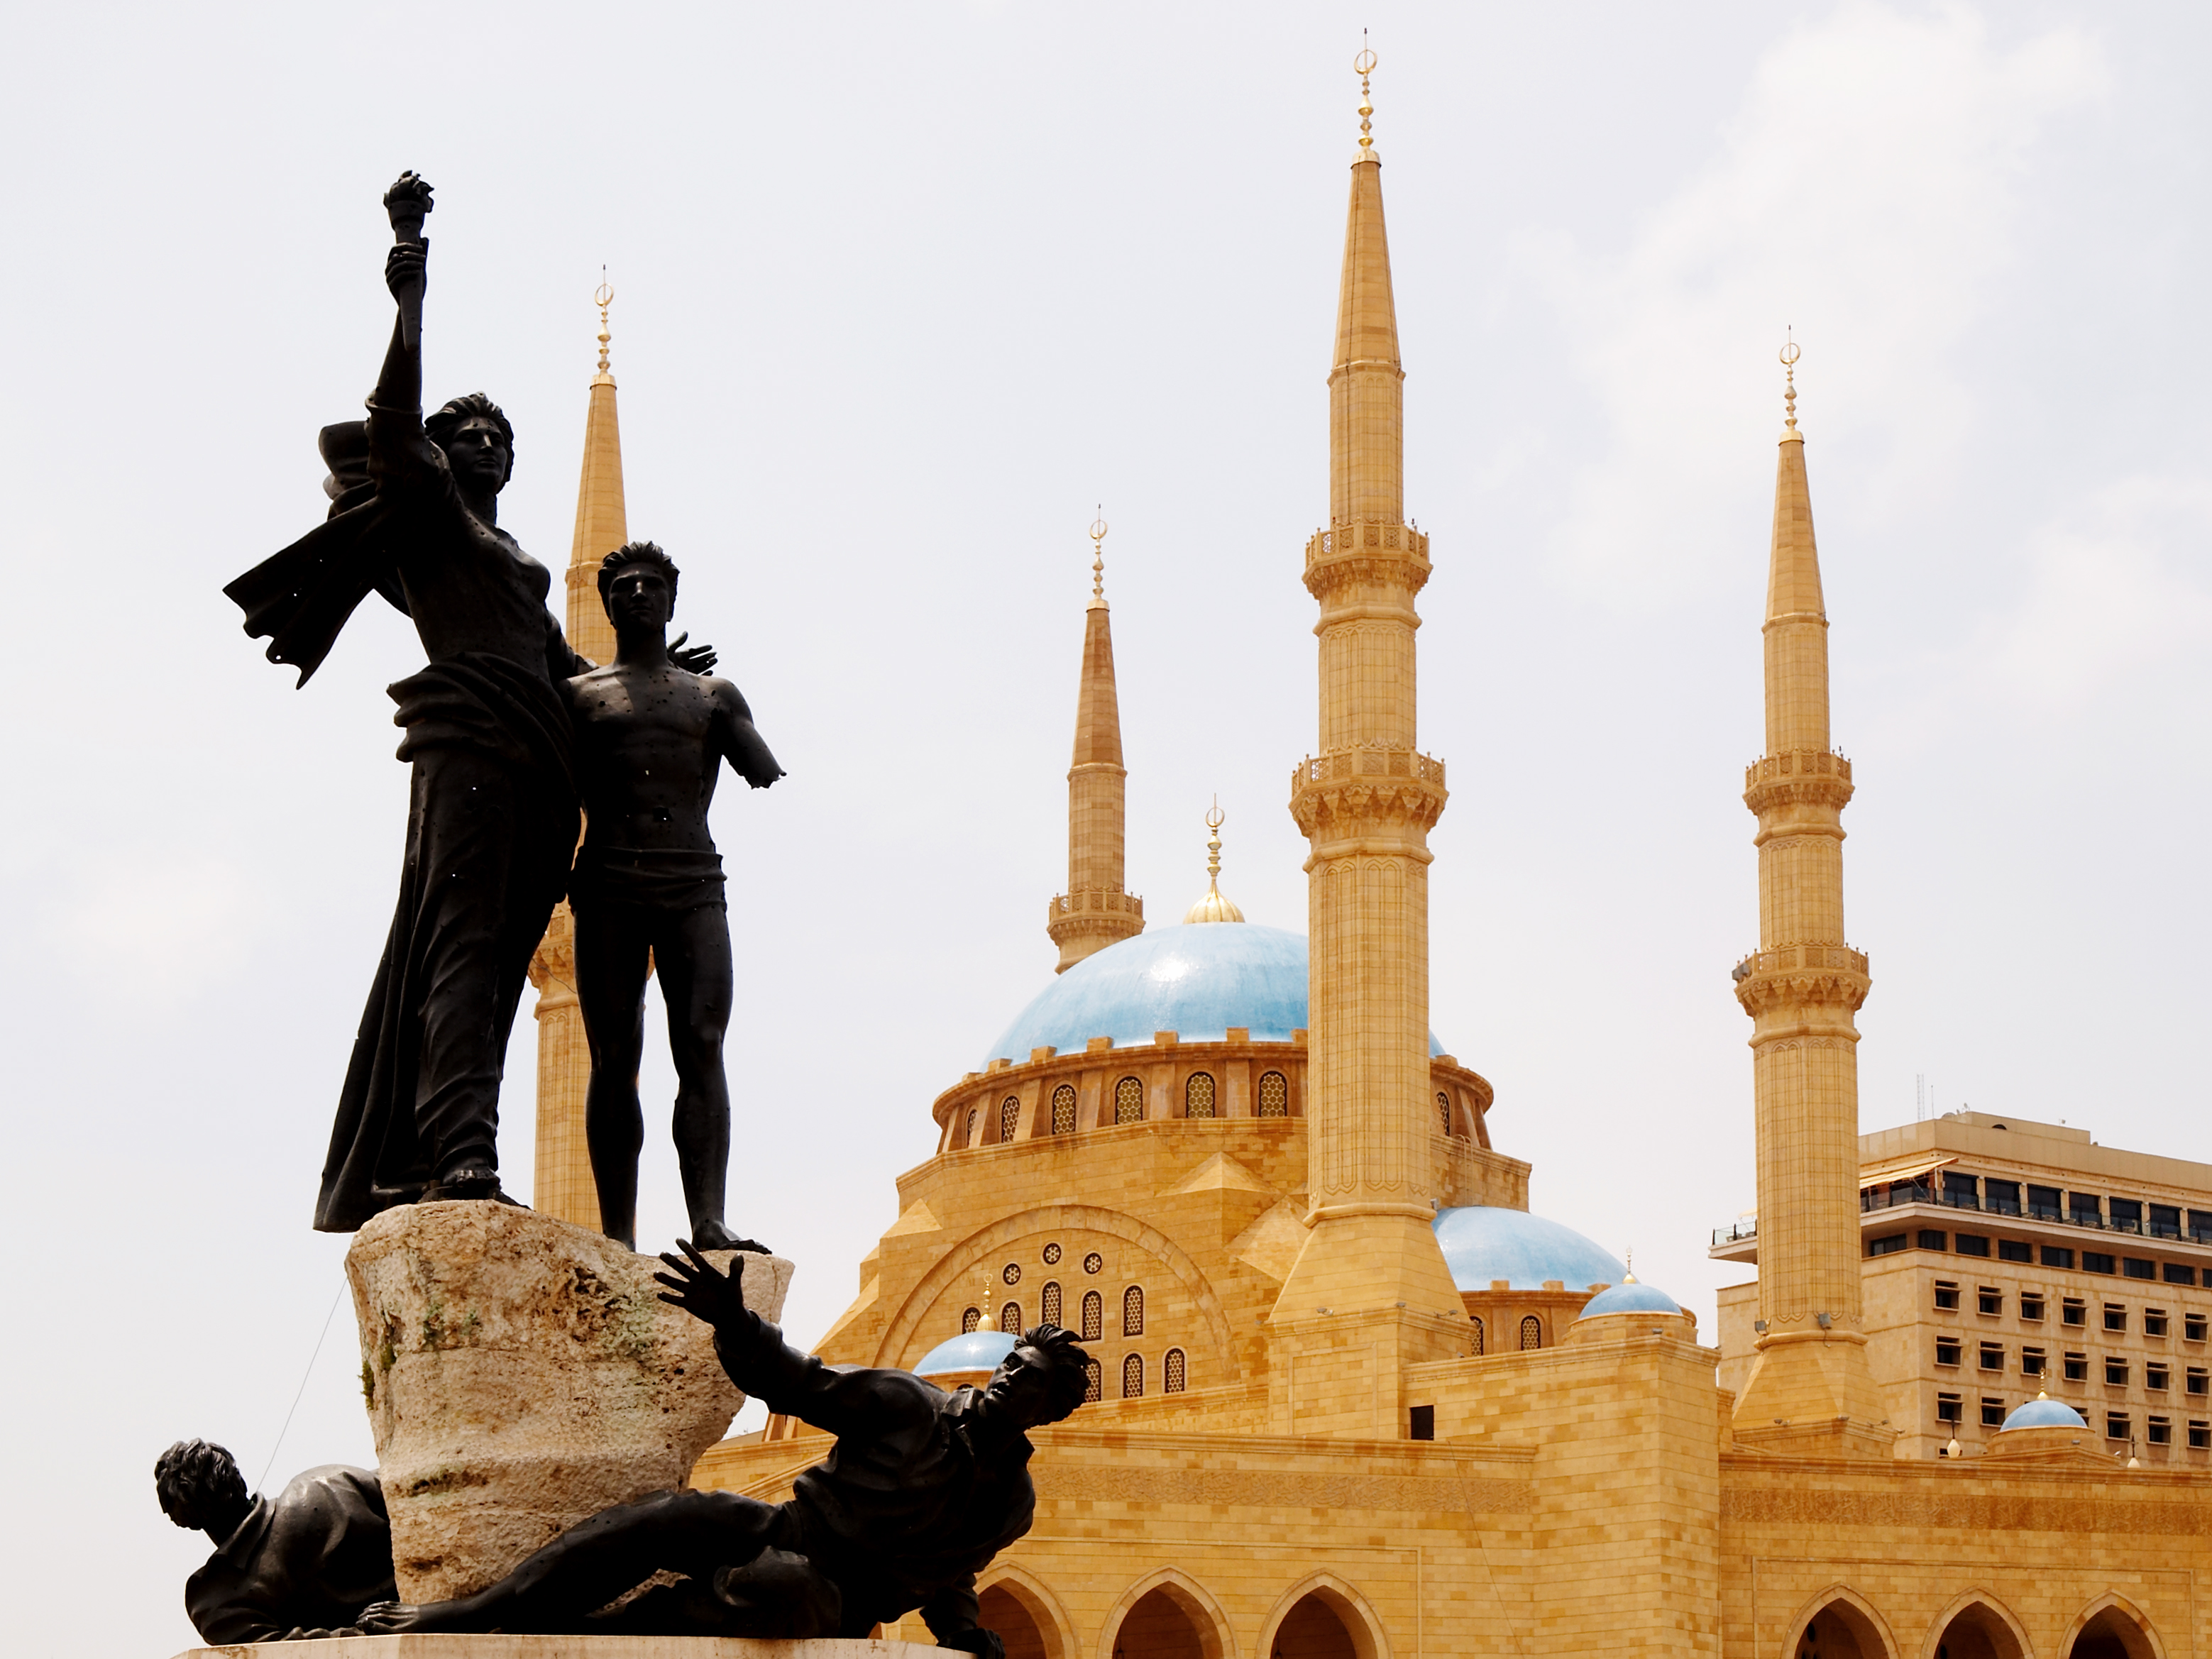 Martyrs Square – the historic city centre, named to commemorate the martyrs executed there during Ottoman rule, and the Mohammad Al-Amin Mosque, also called the Blue Mosque